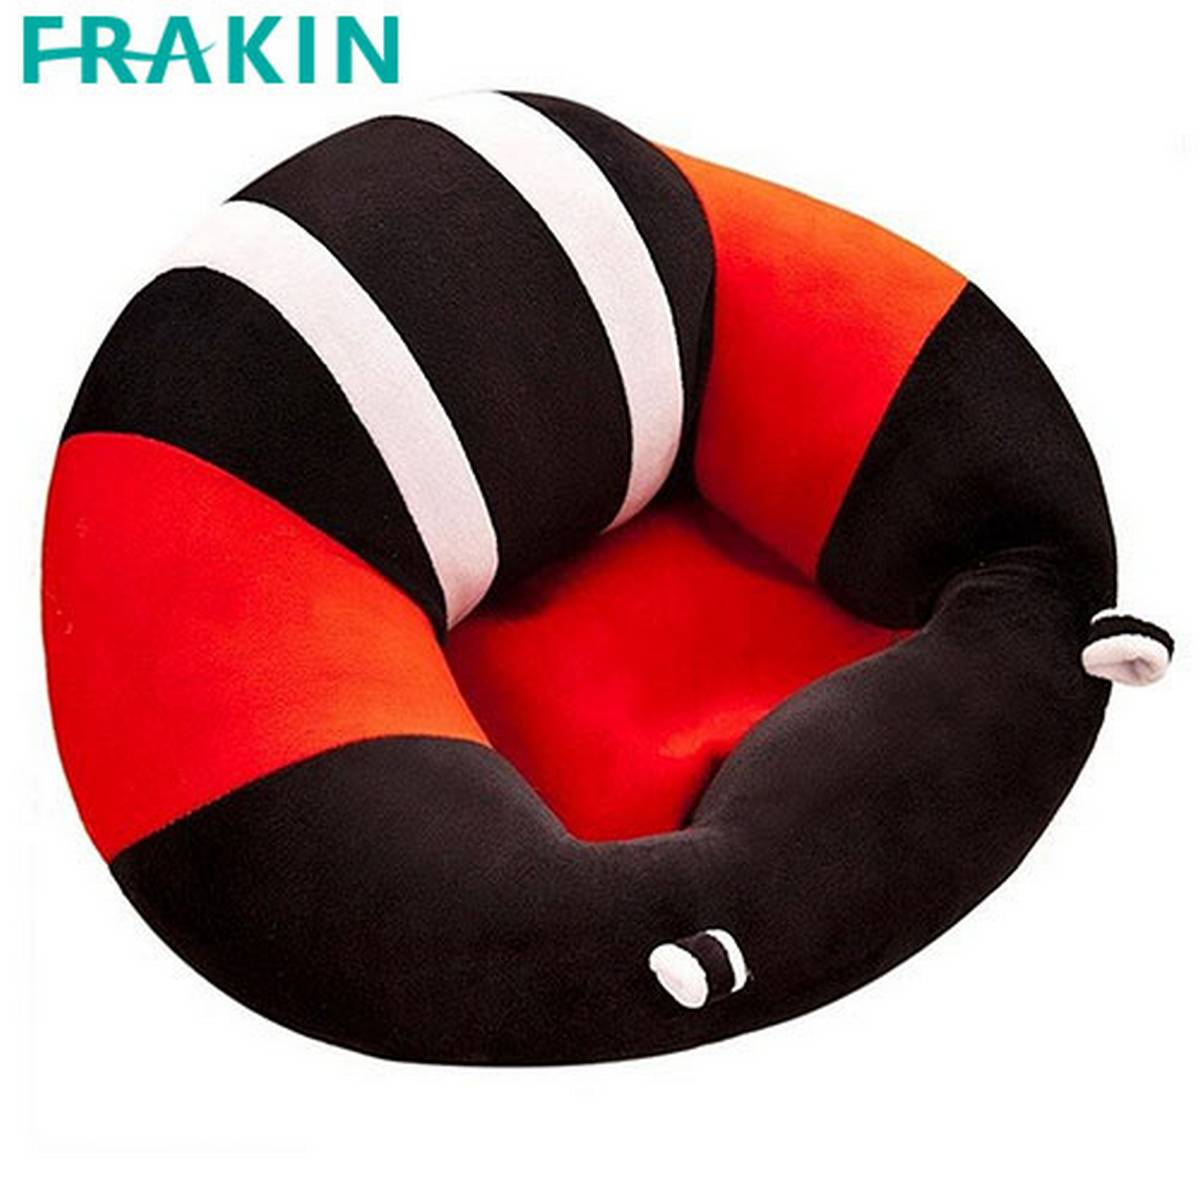 Baby Support Seat Plush Soft Baby Sofa Infant Learning To Sit Chair Soft Comfortable Baby Sofa For Baby-KS